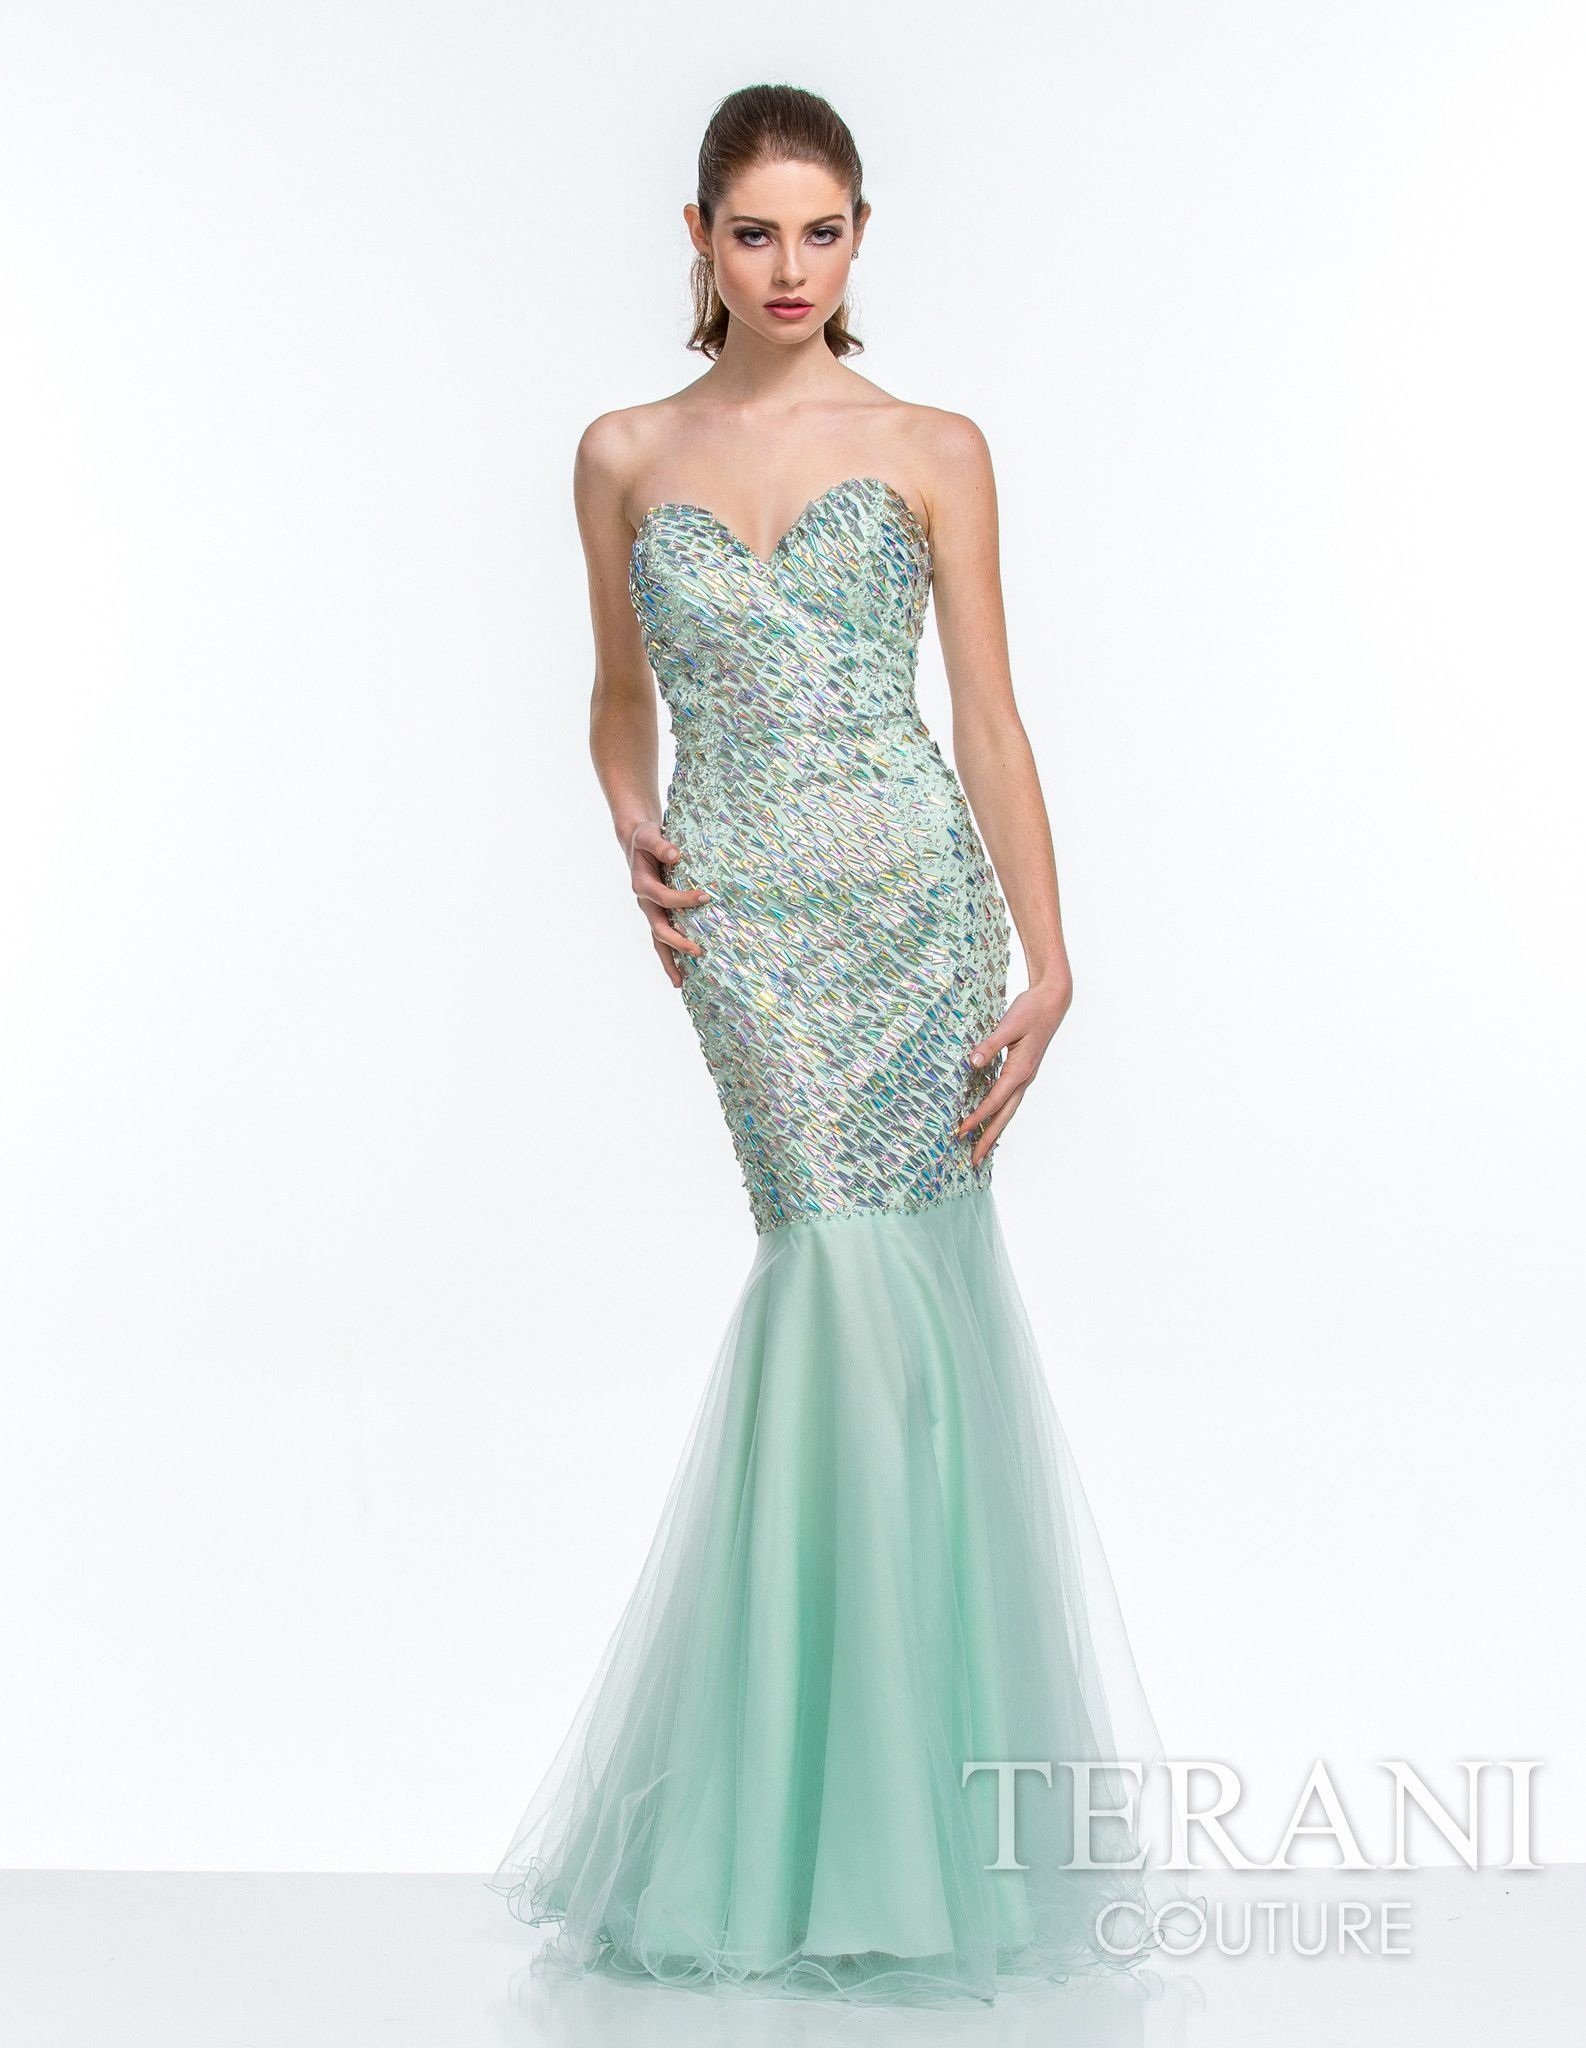 Contemporary Prom Dresses In Bismarck Nd Motif - All Wedding Dresses ...